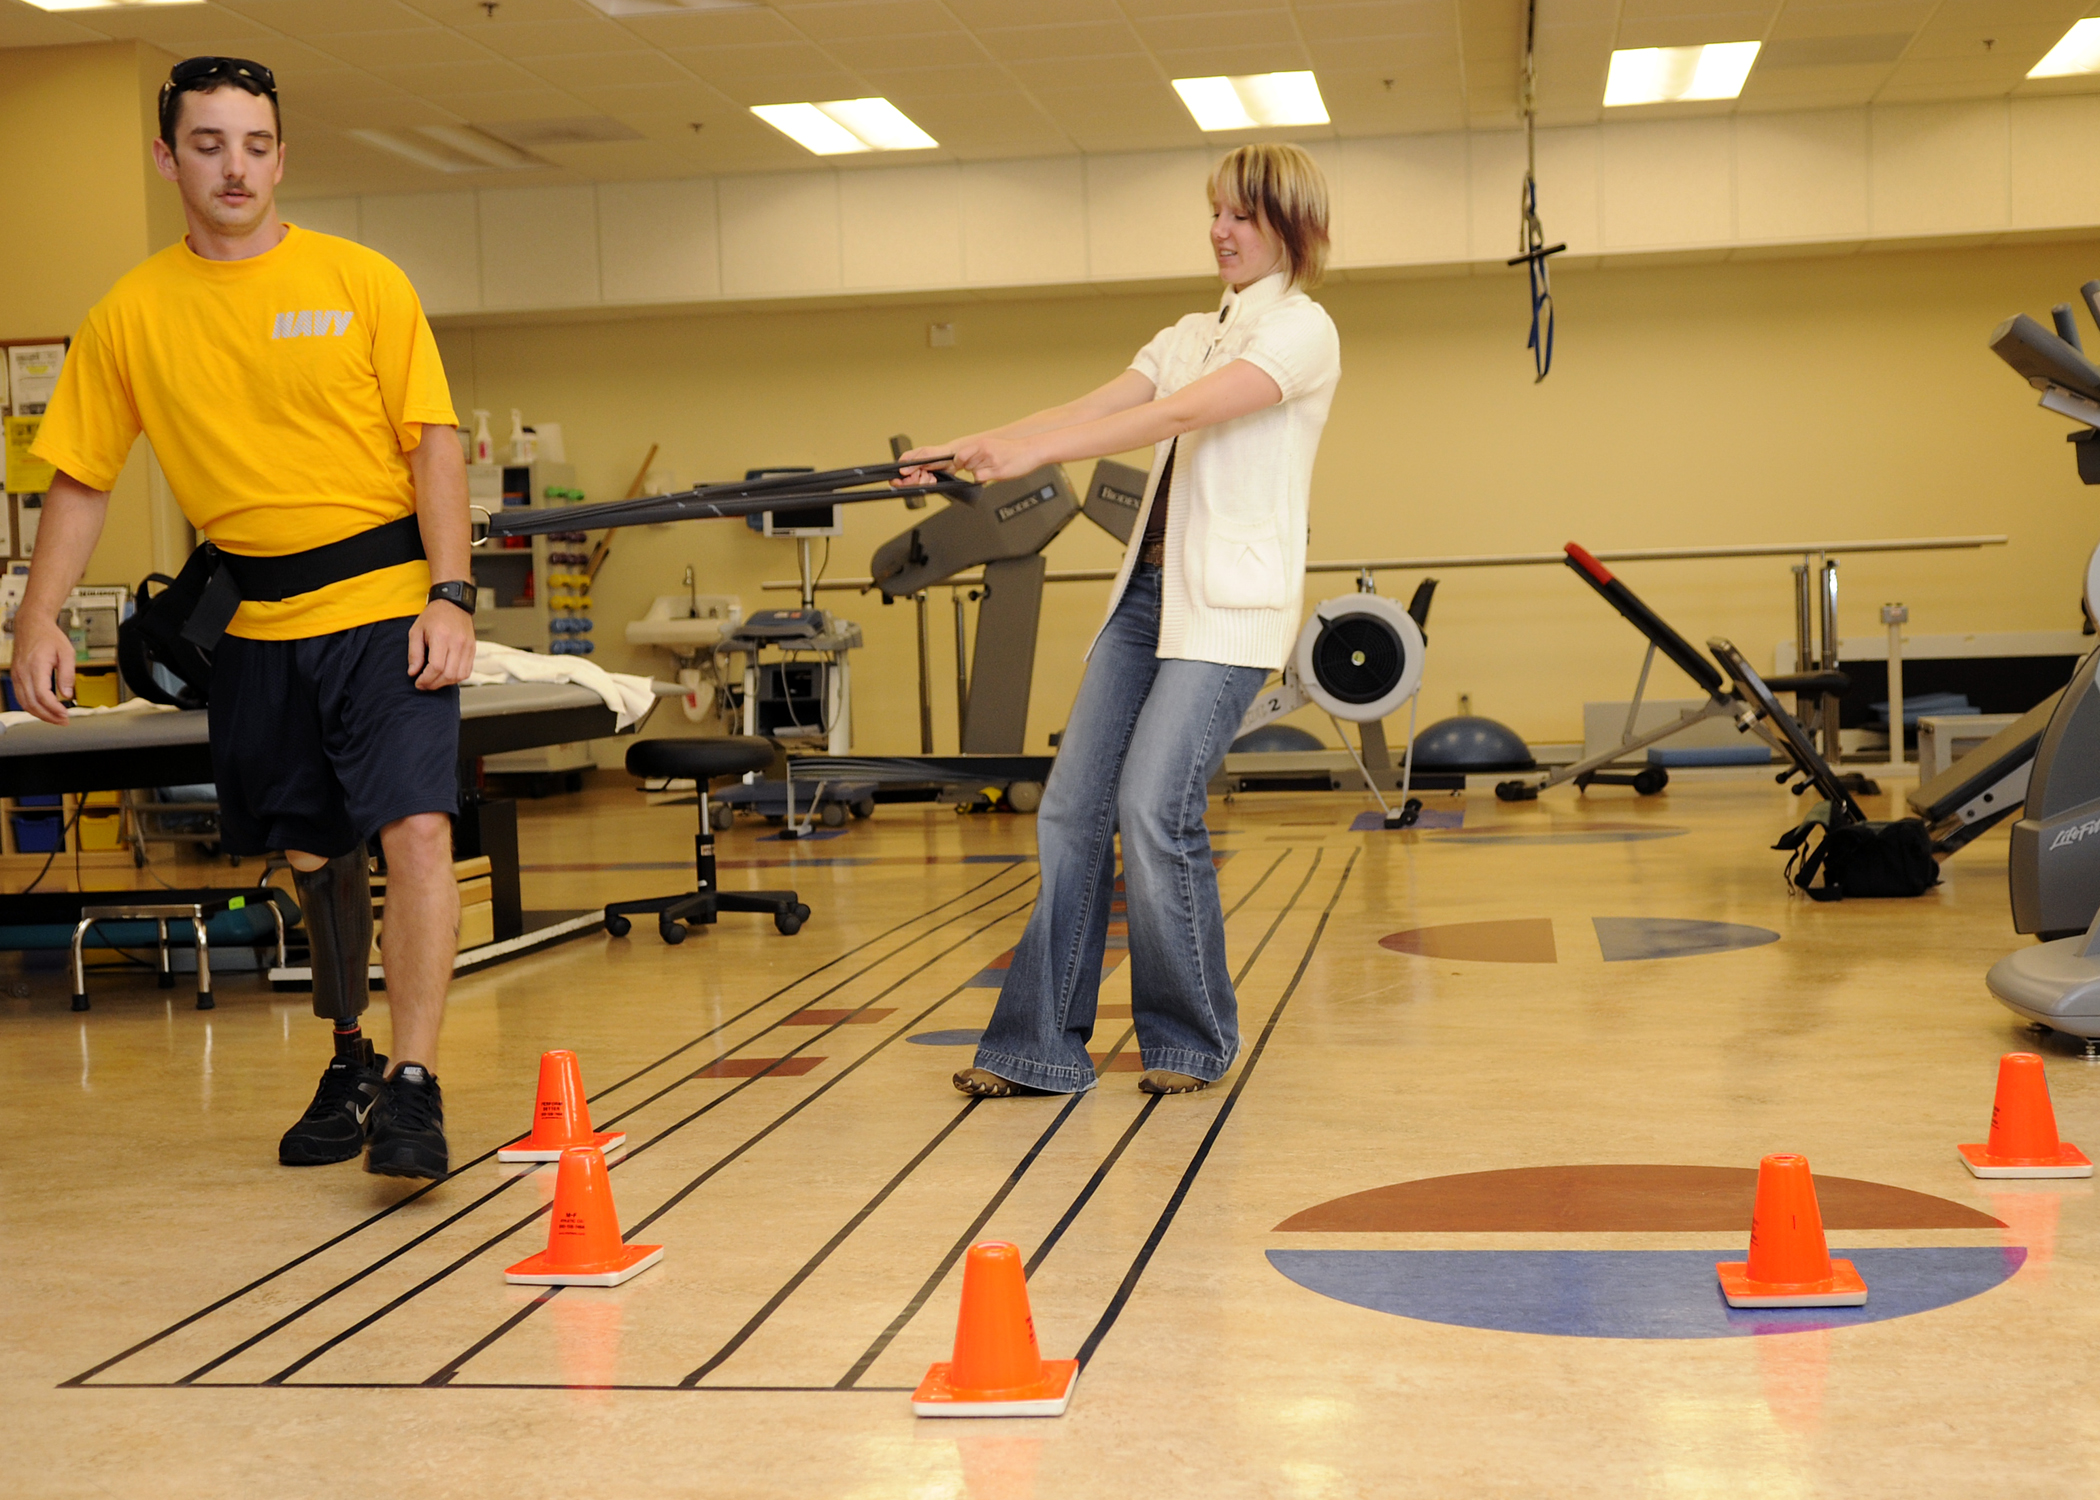 Definition of physical therapy - Physical Therapy Image Source